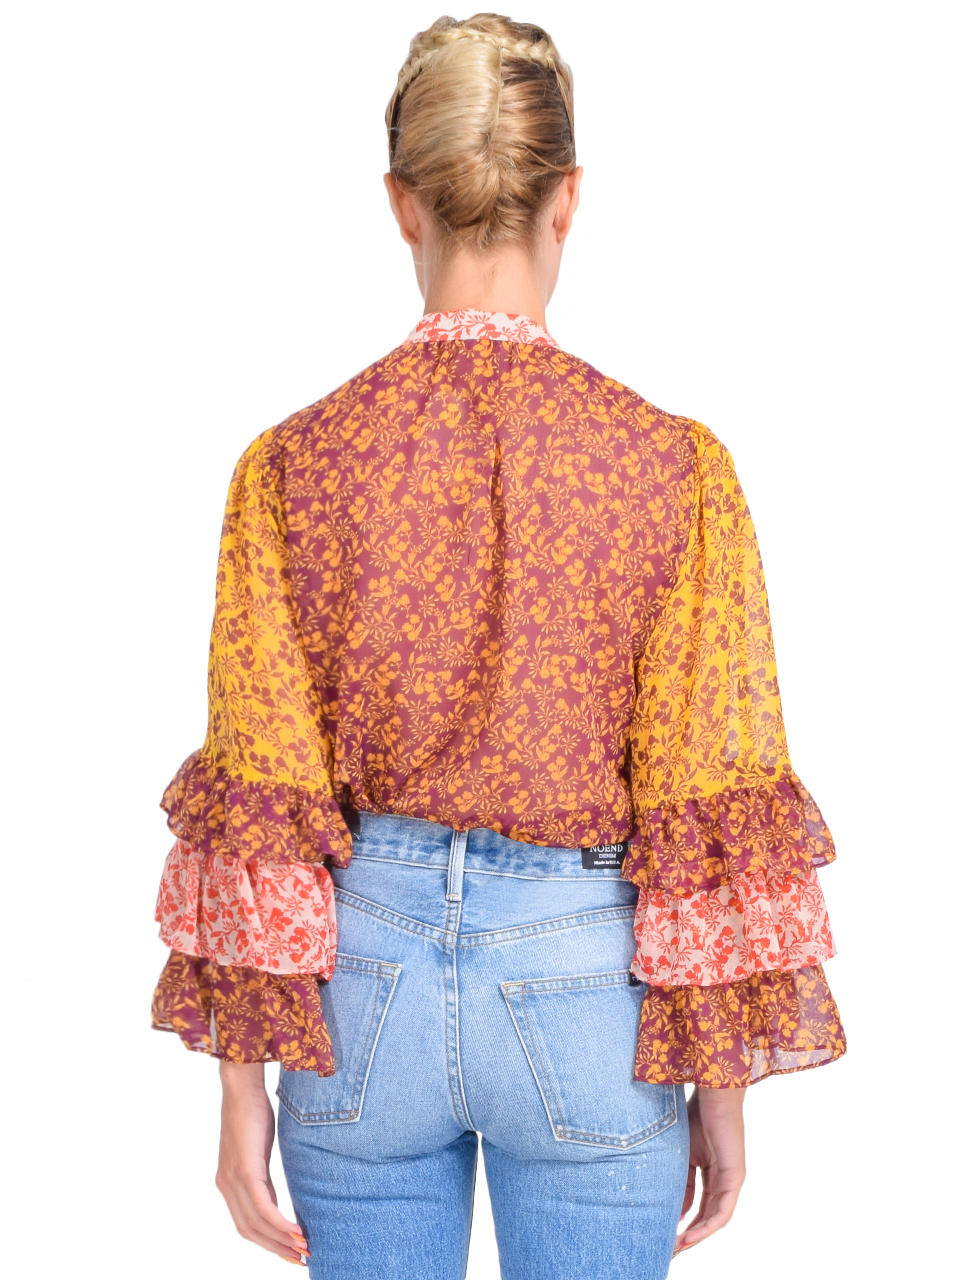 Alice + Olivia Justice Ruffle Sleeve Blouse in Rome Floral Back View